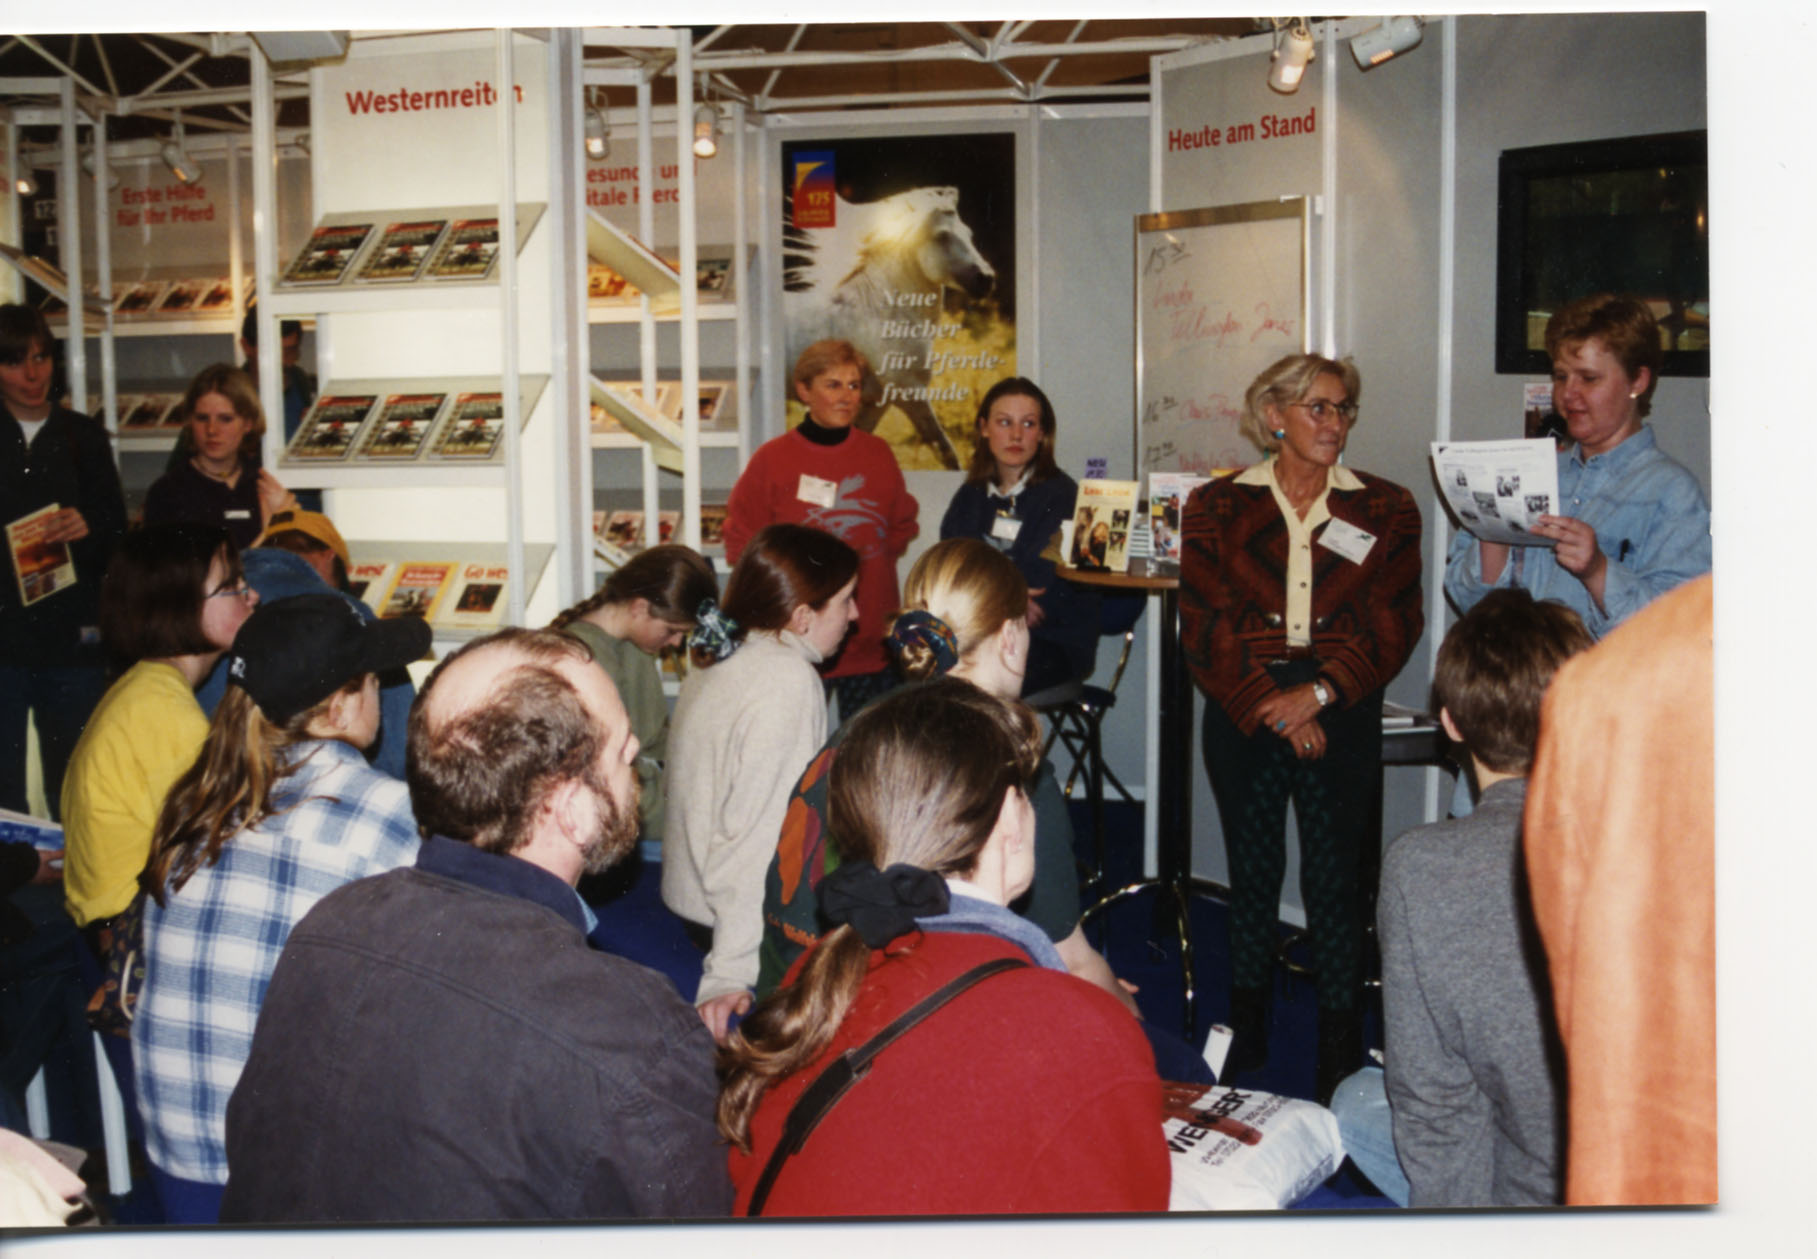 Meet and Greet at Kosmos' Booth (my German publisher) in 1996.